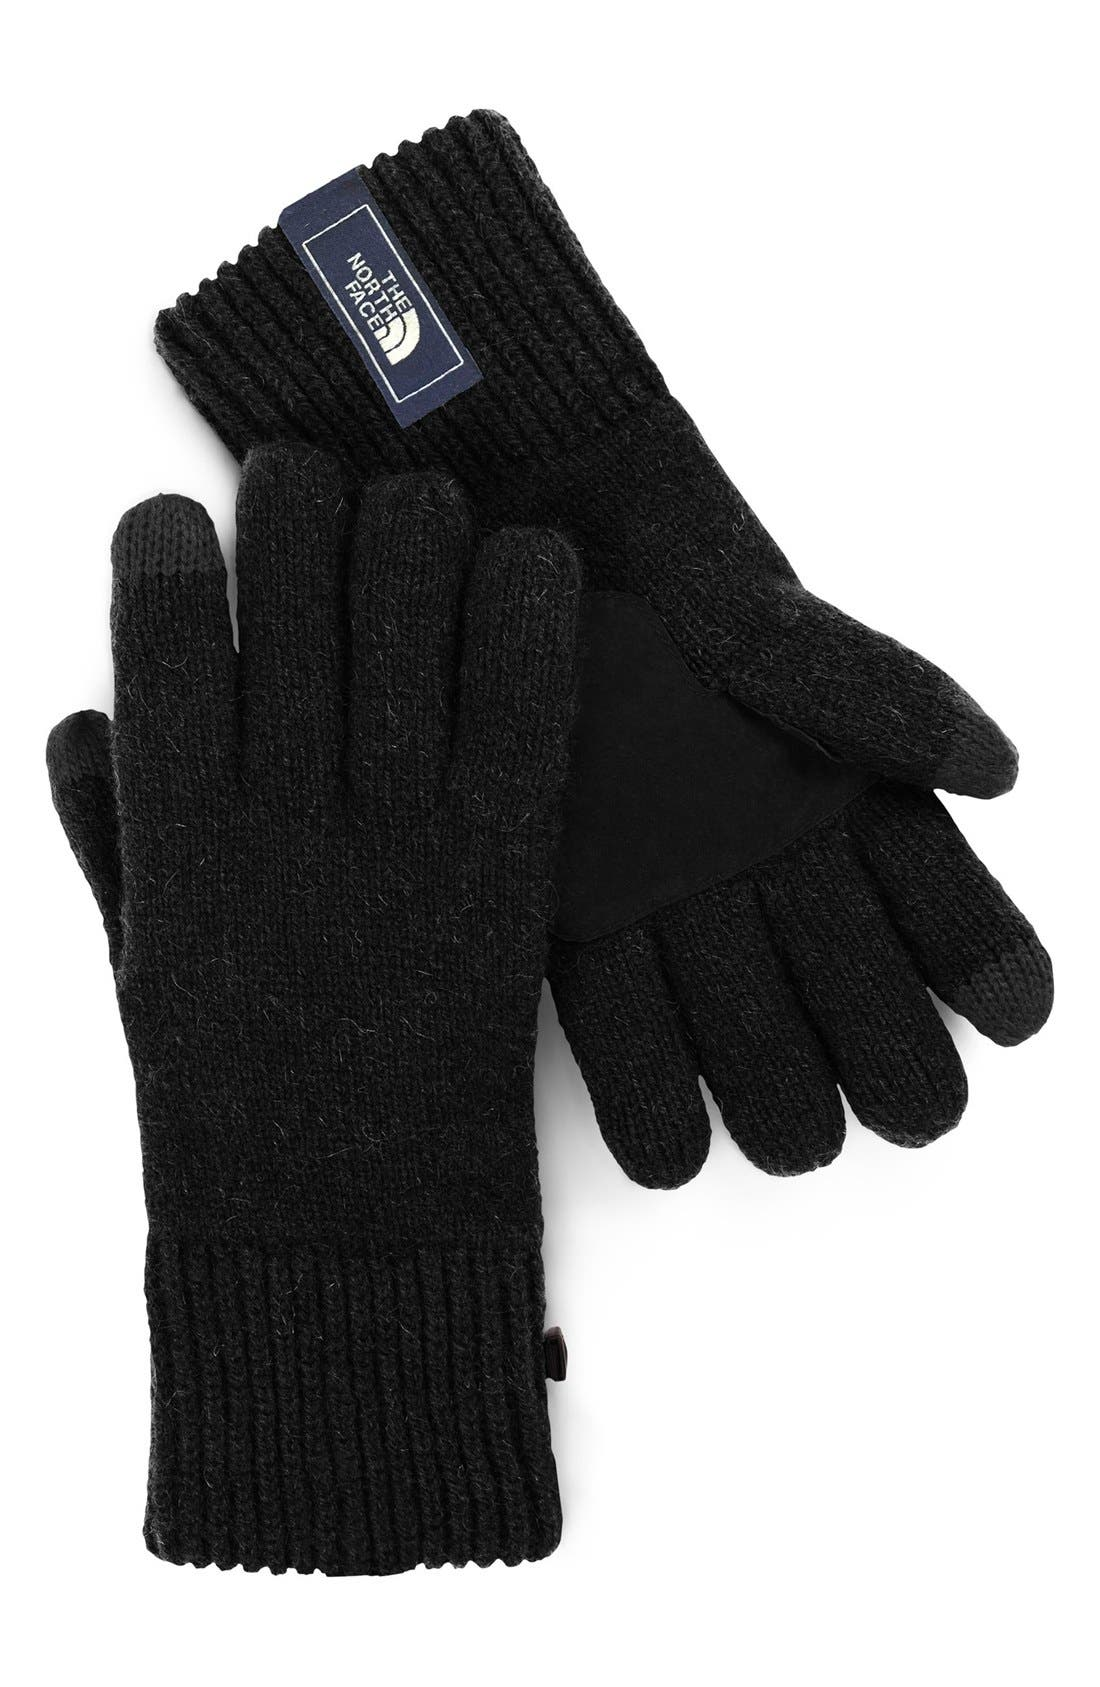 'Salty Dog' E-Tip Gloves,                             Main thumbnail 1, color,                             001